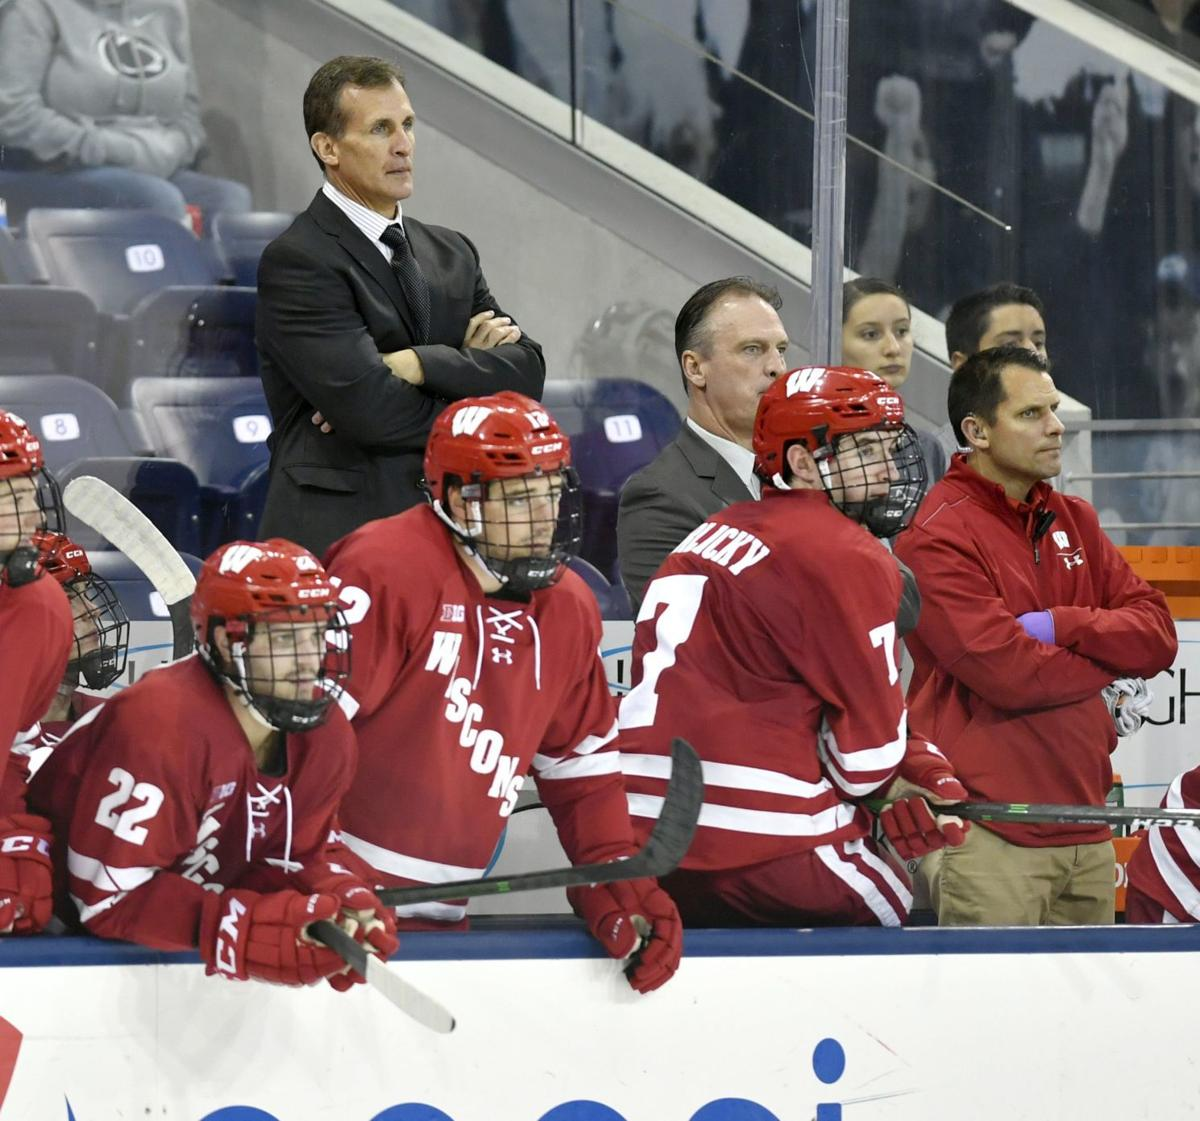 Badgers bench